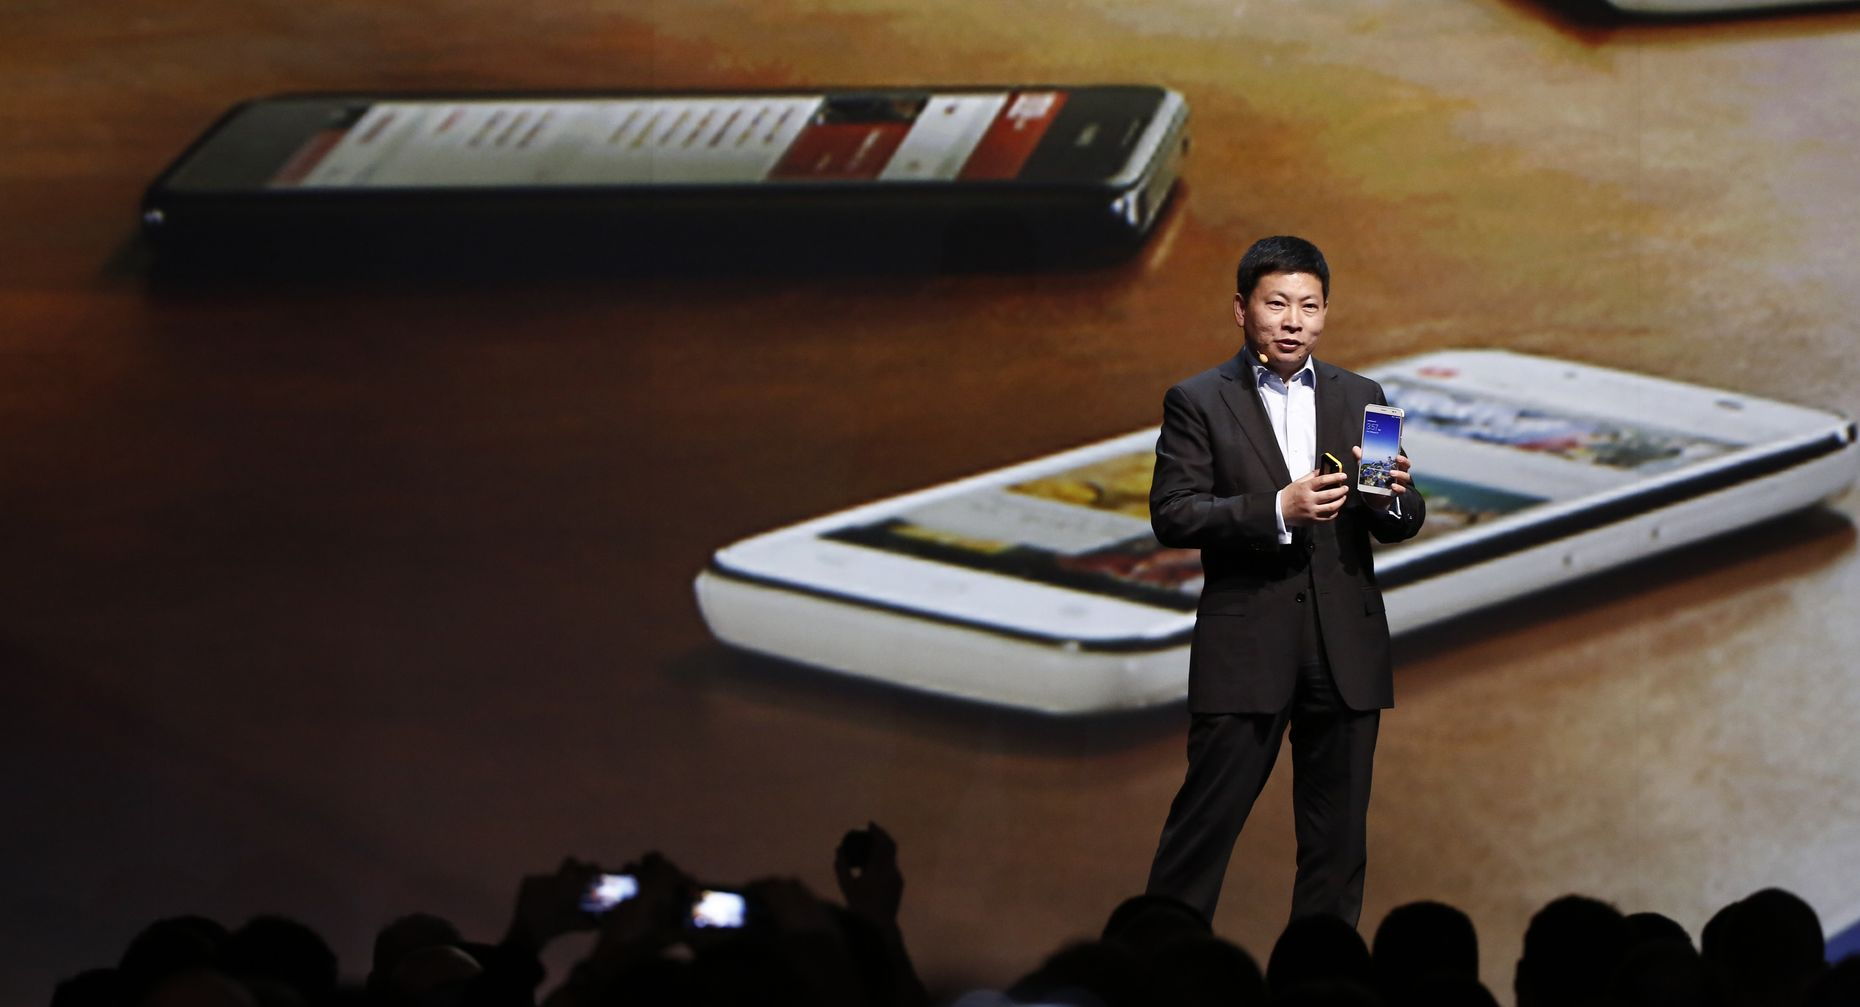 Richard Yu, who leads the devices group at Huawei Technologies. Photo by Bloomberg.